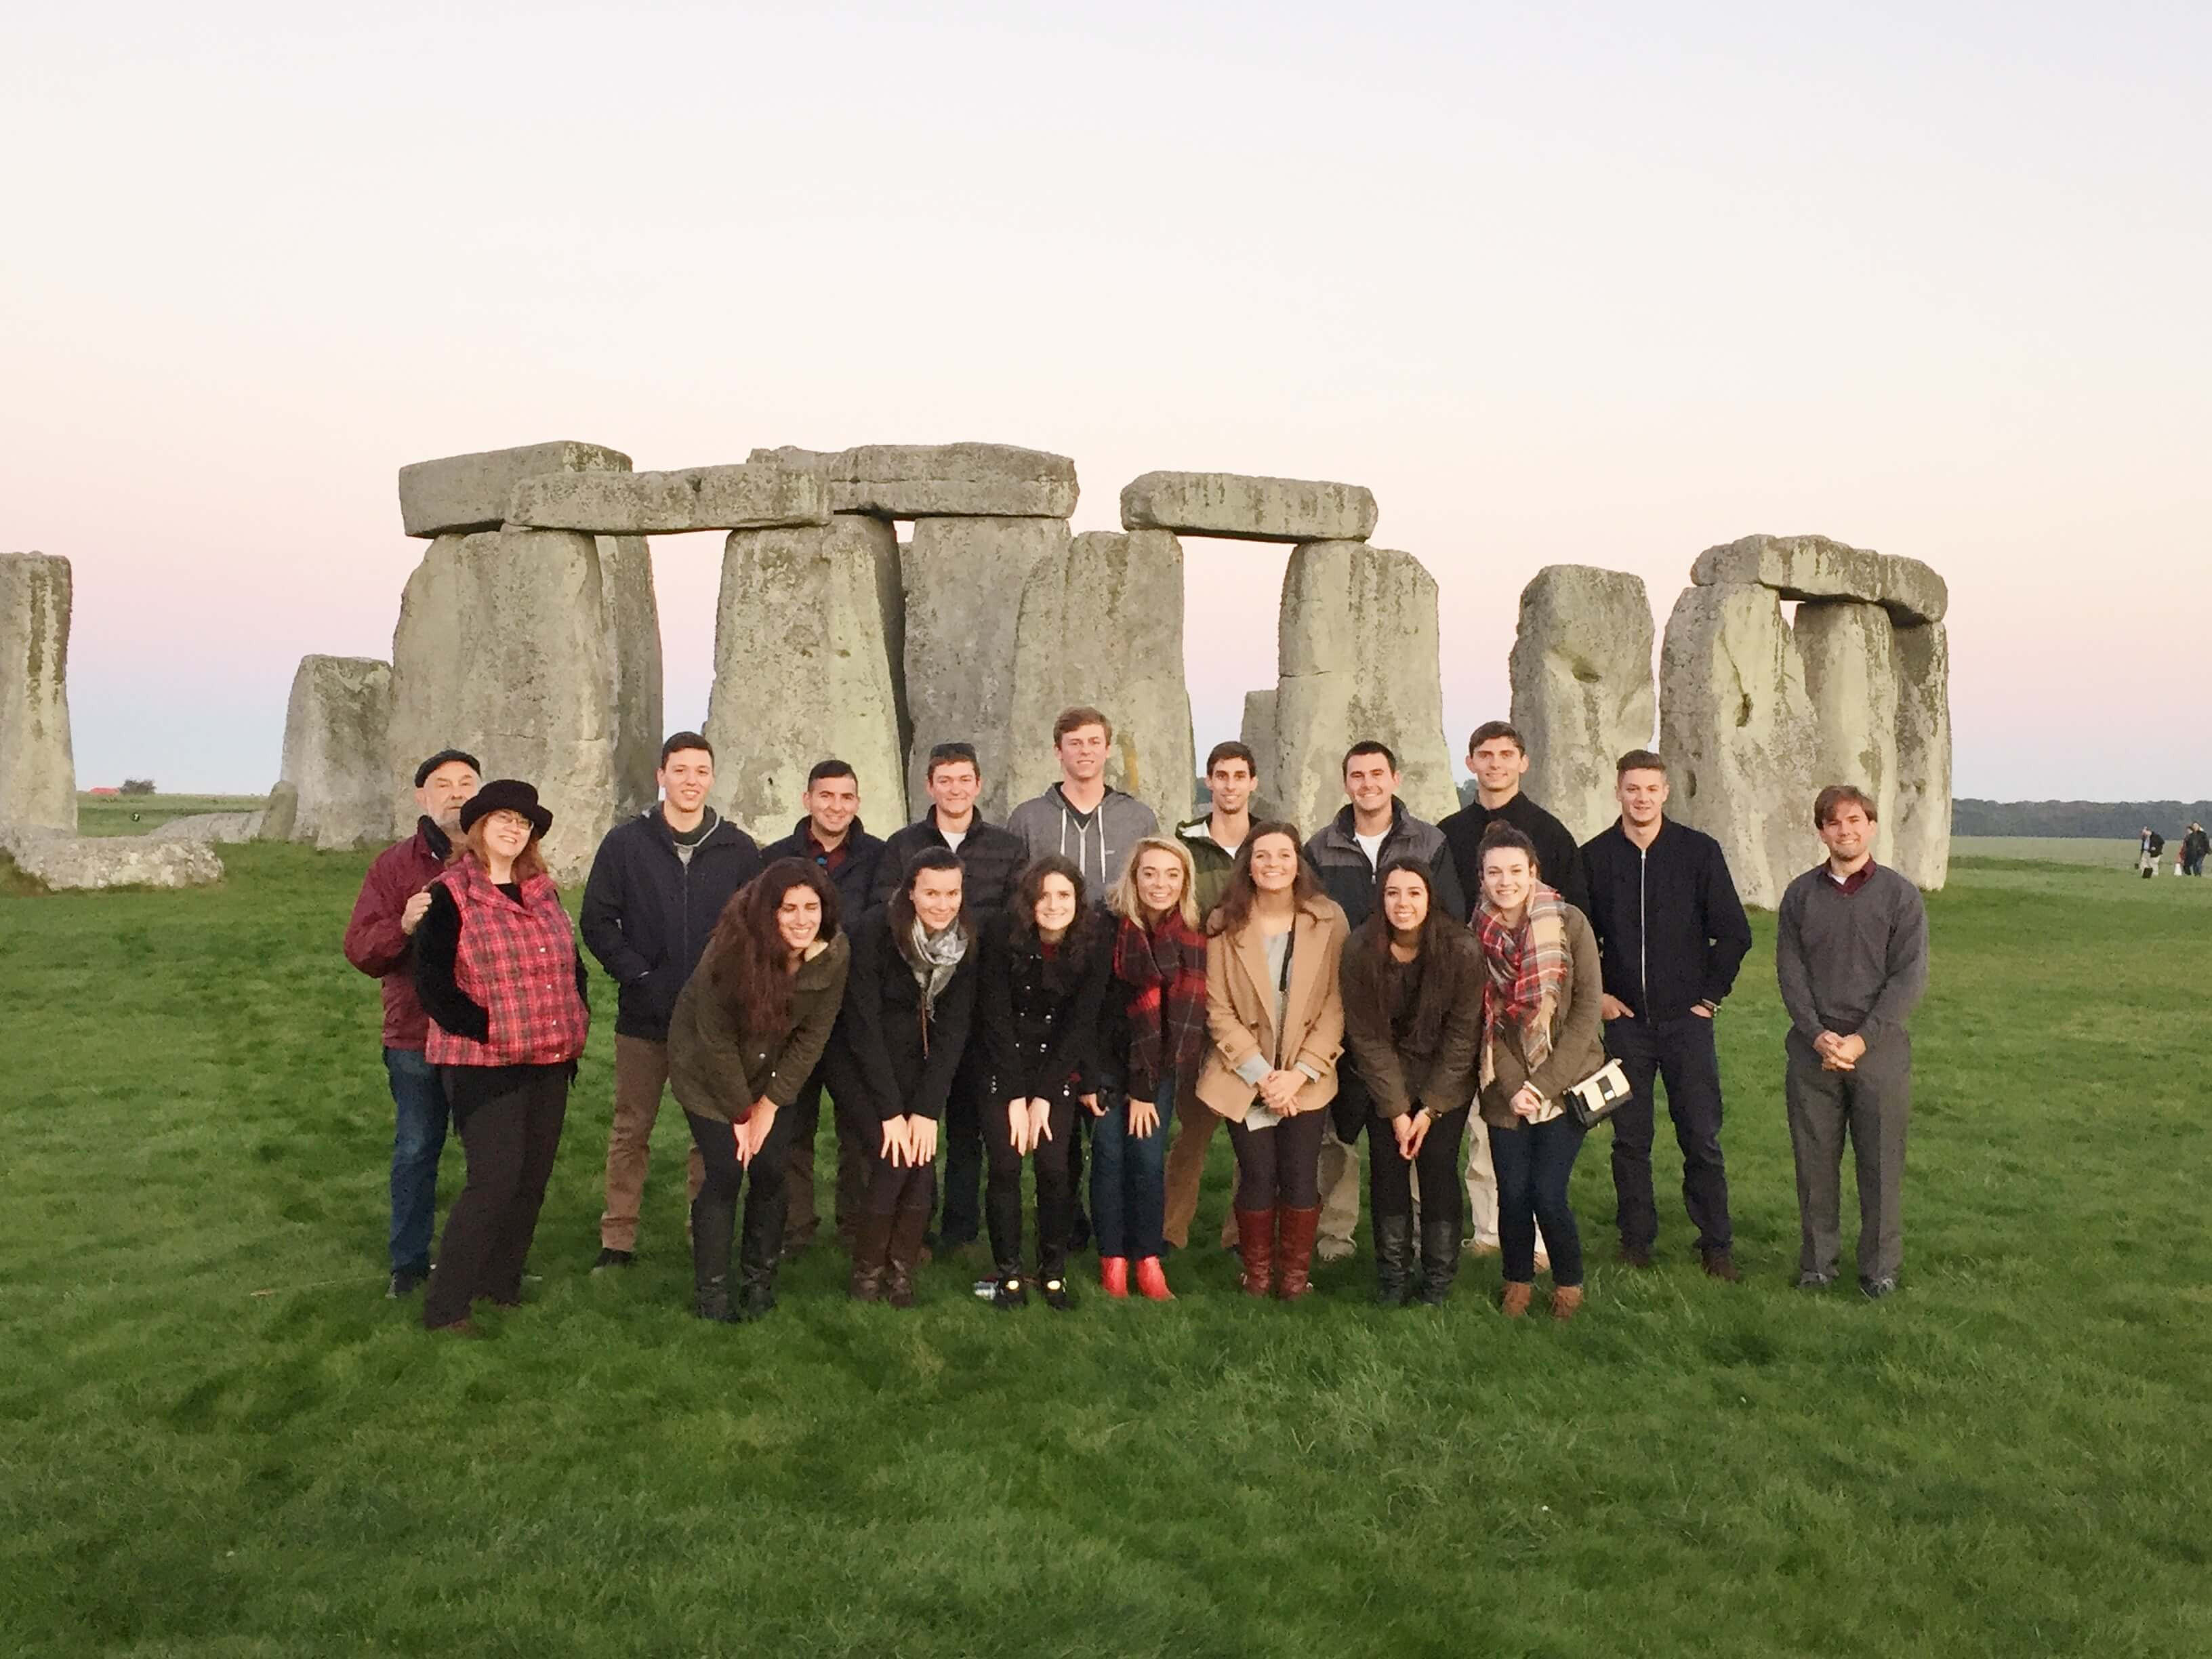 Group of University students on educational tour with Stonehenge at dawn behind them